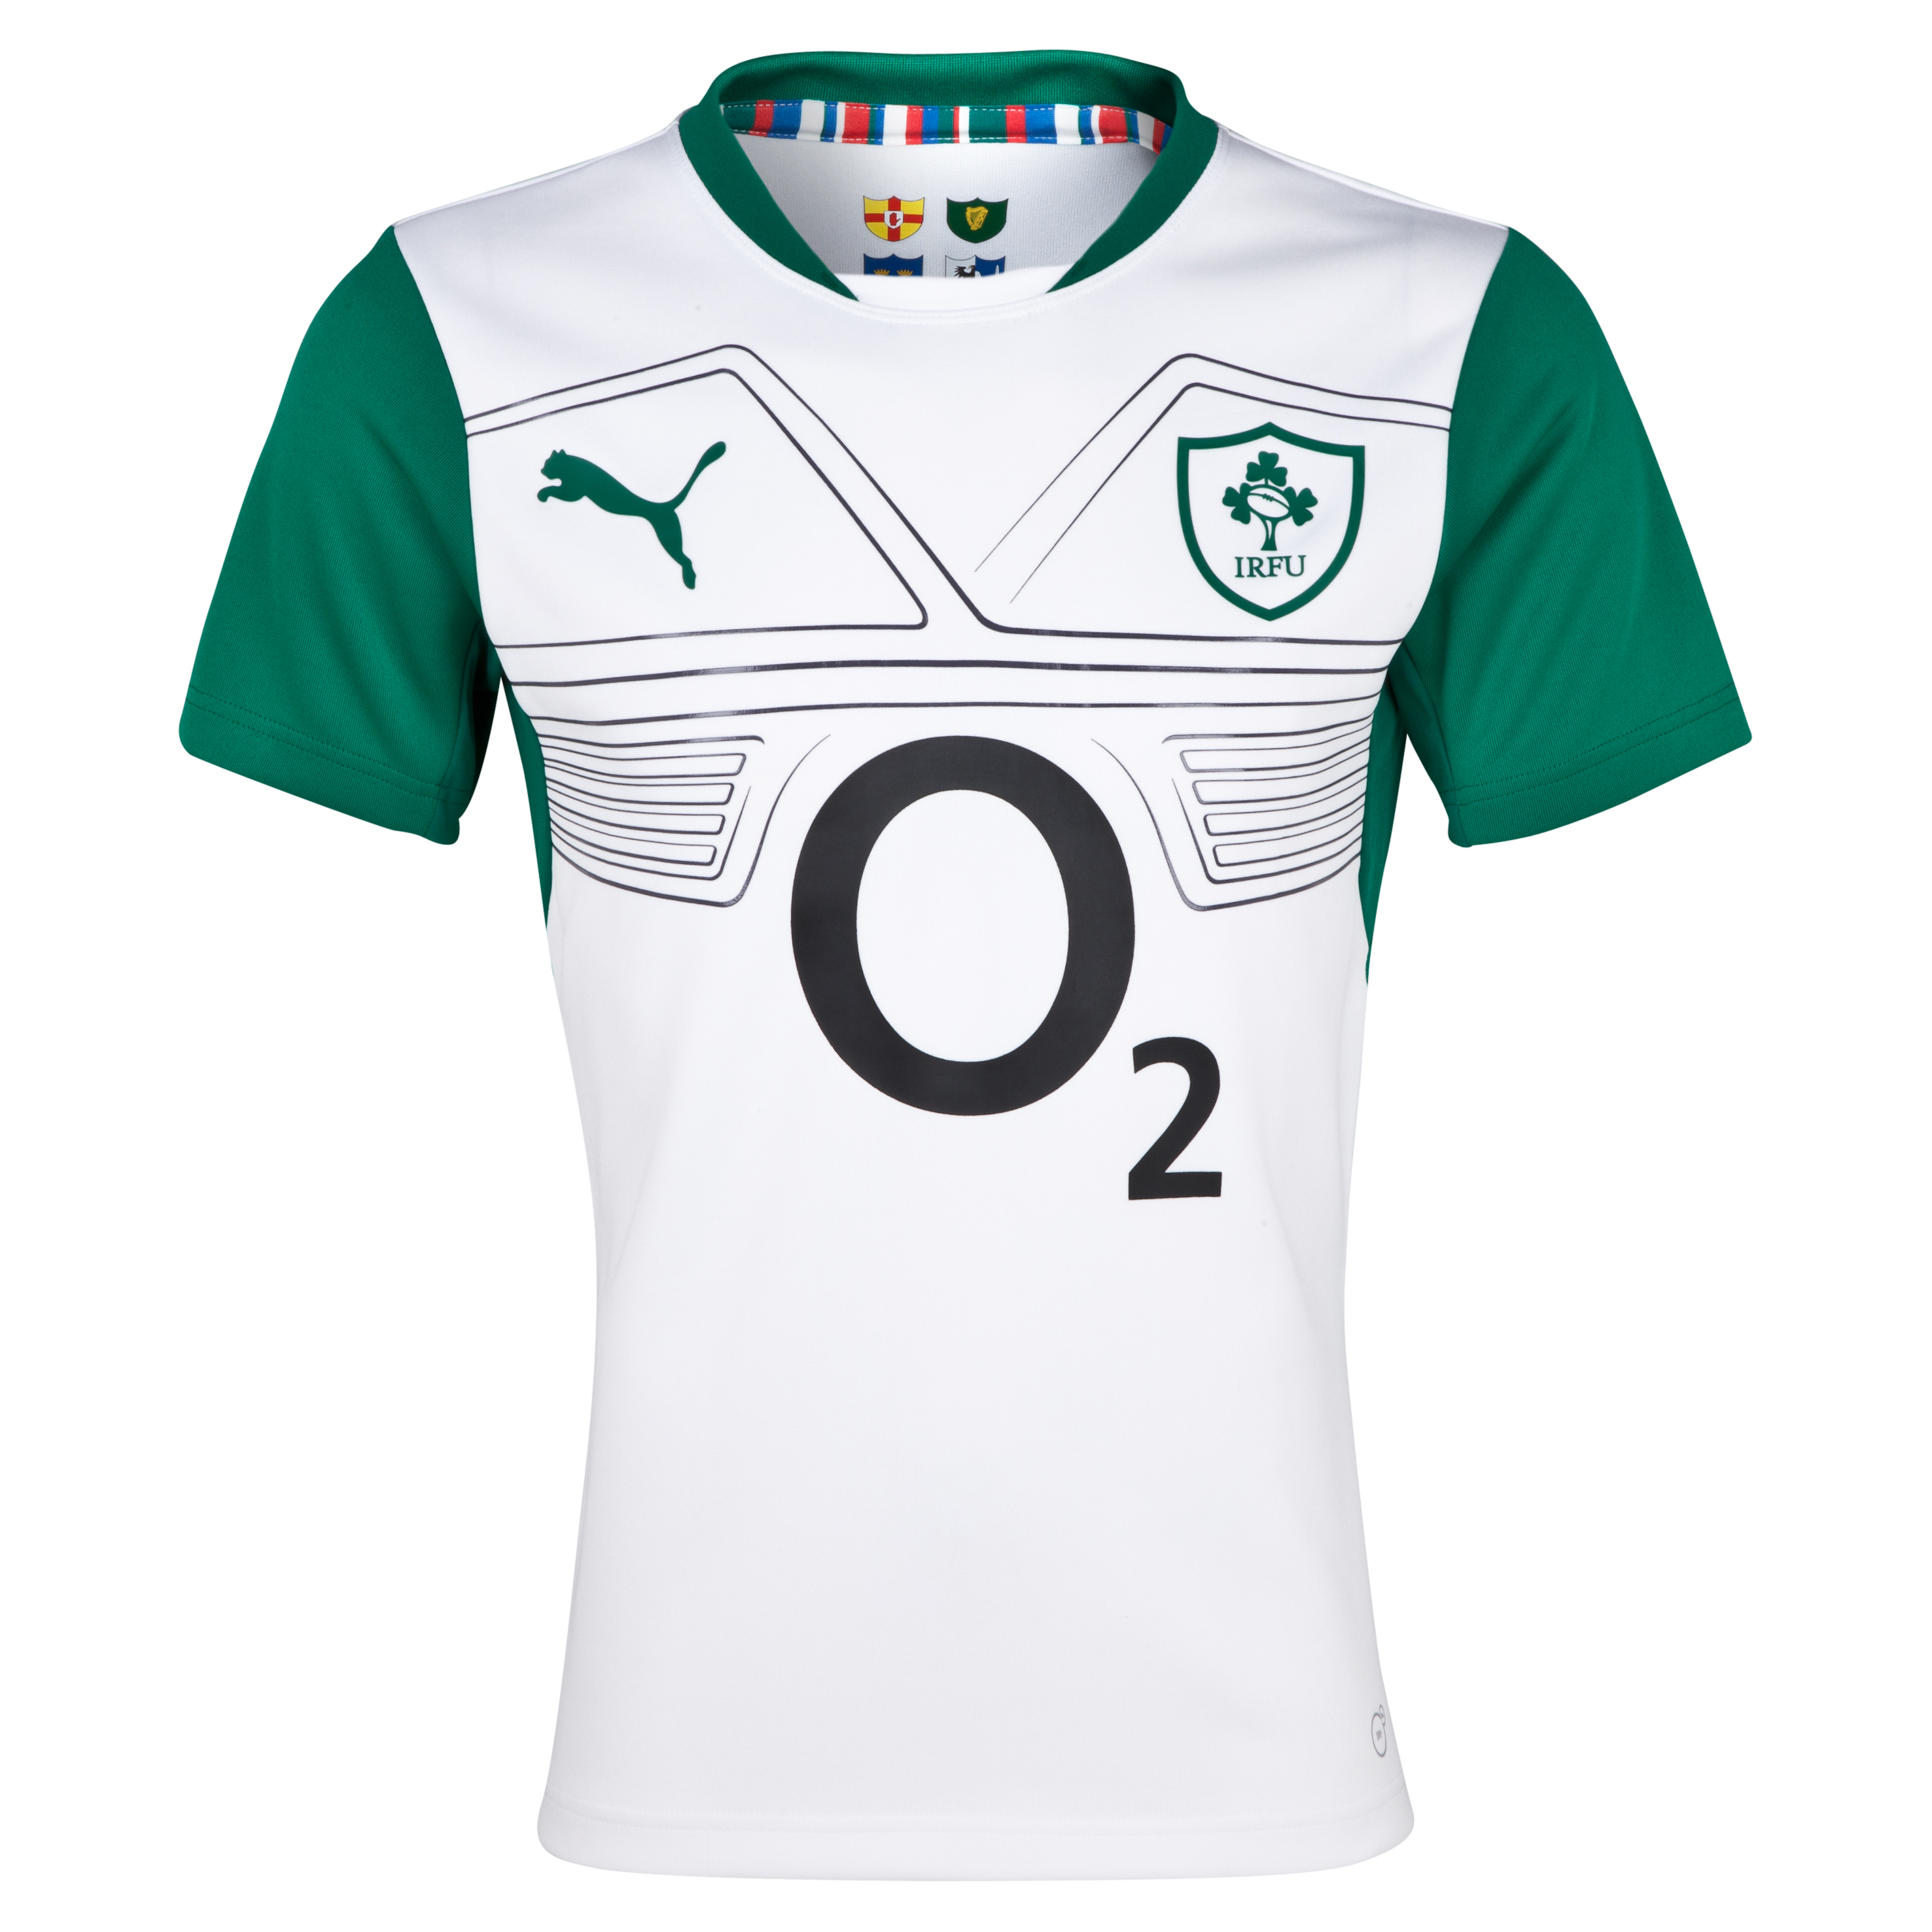 Ireland Alternative Shirt 2013/14